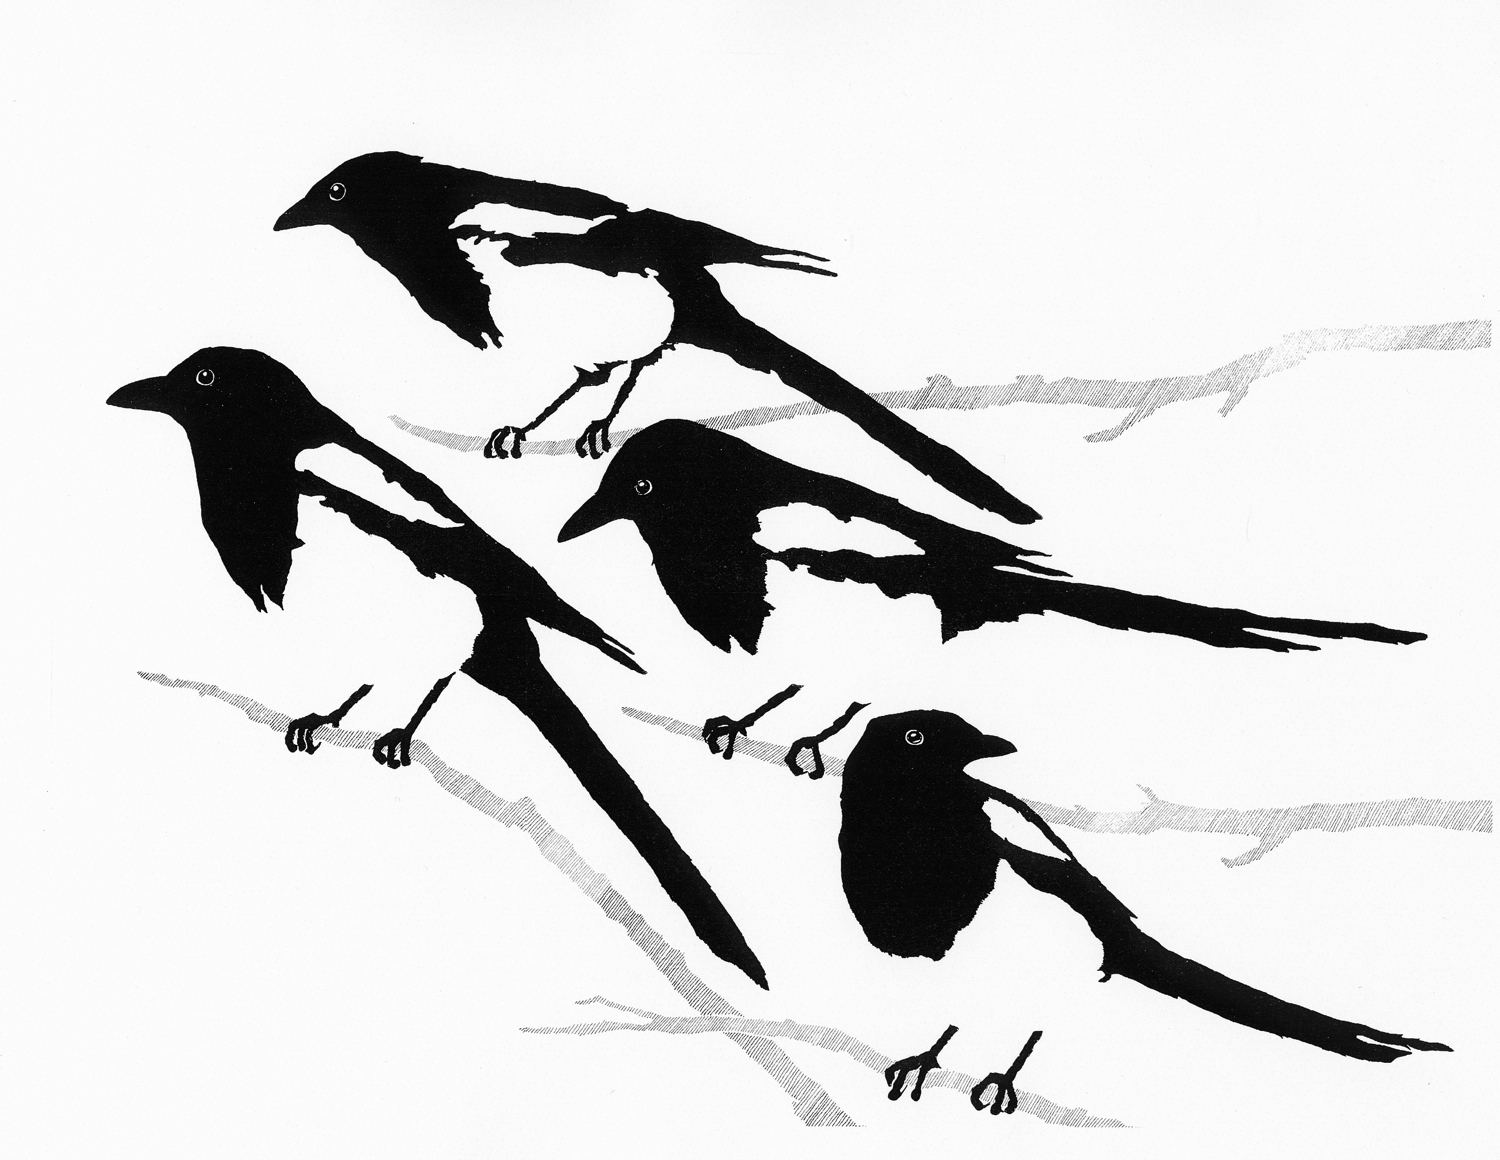 Black Feathers, White Air • © Fred Montague  $185 • Photolithograph • image 27 x 19 unmatted  Edition size: 880 • status: available